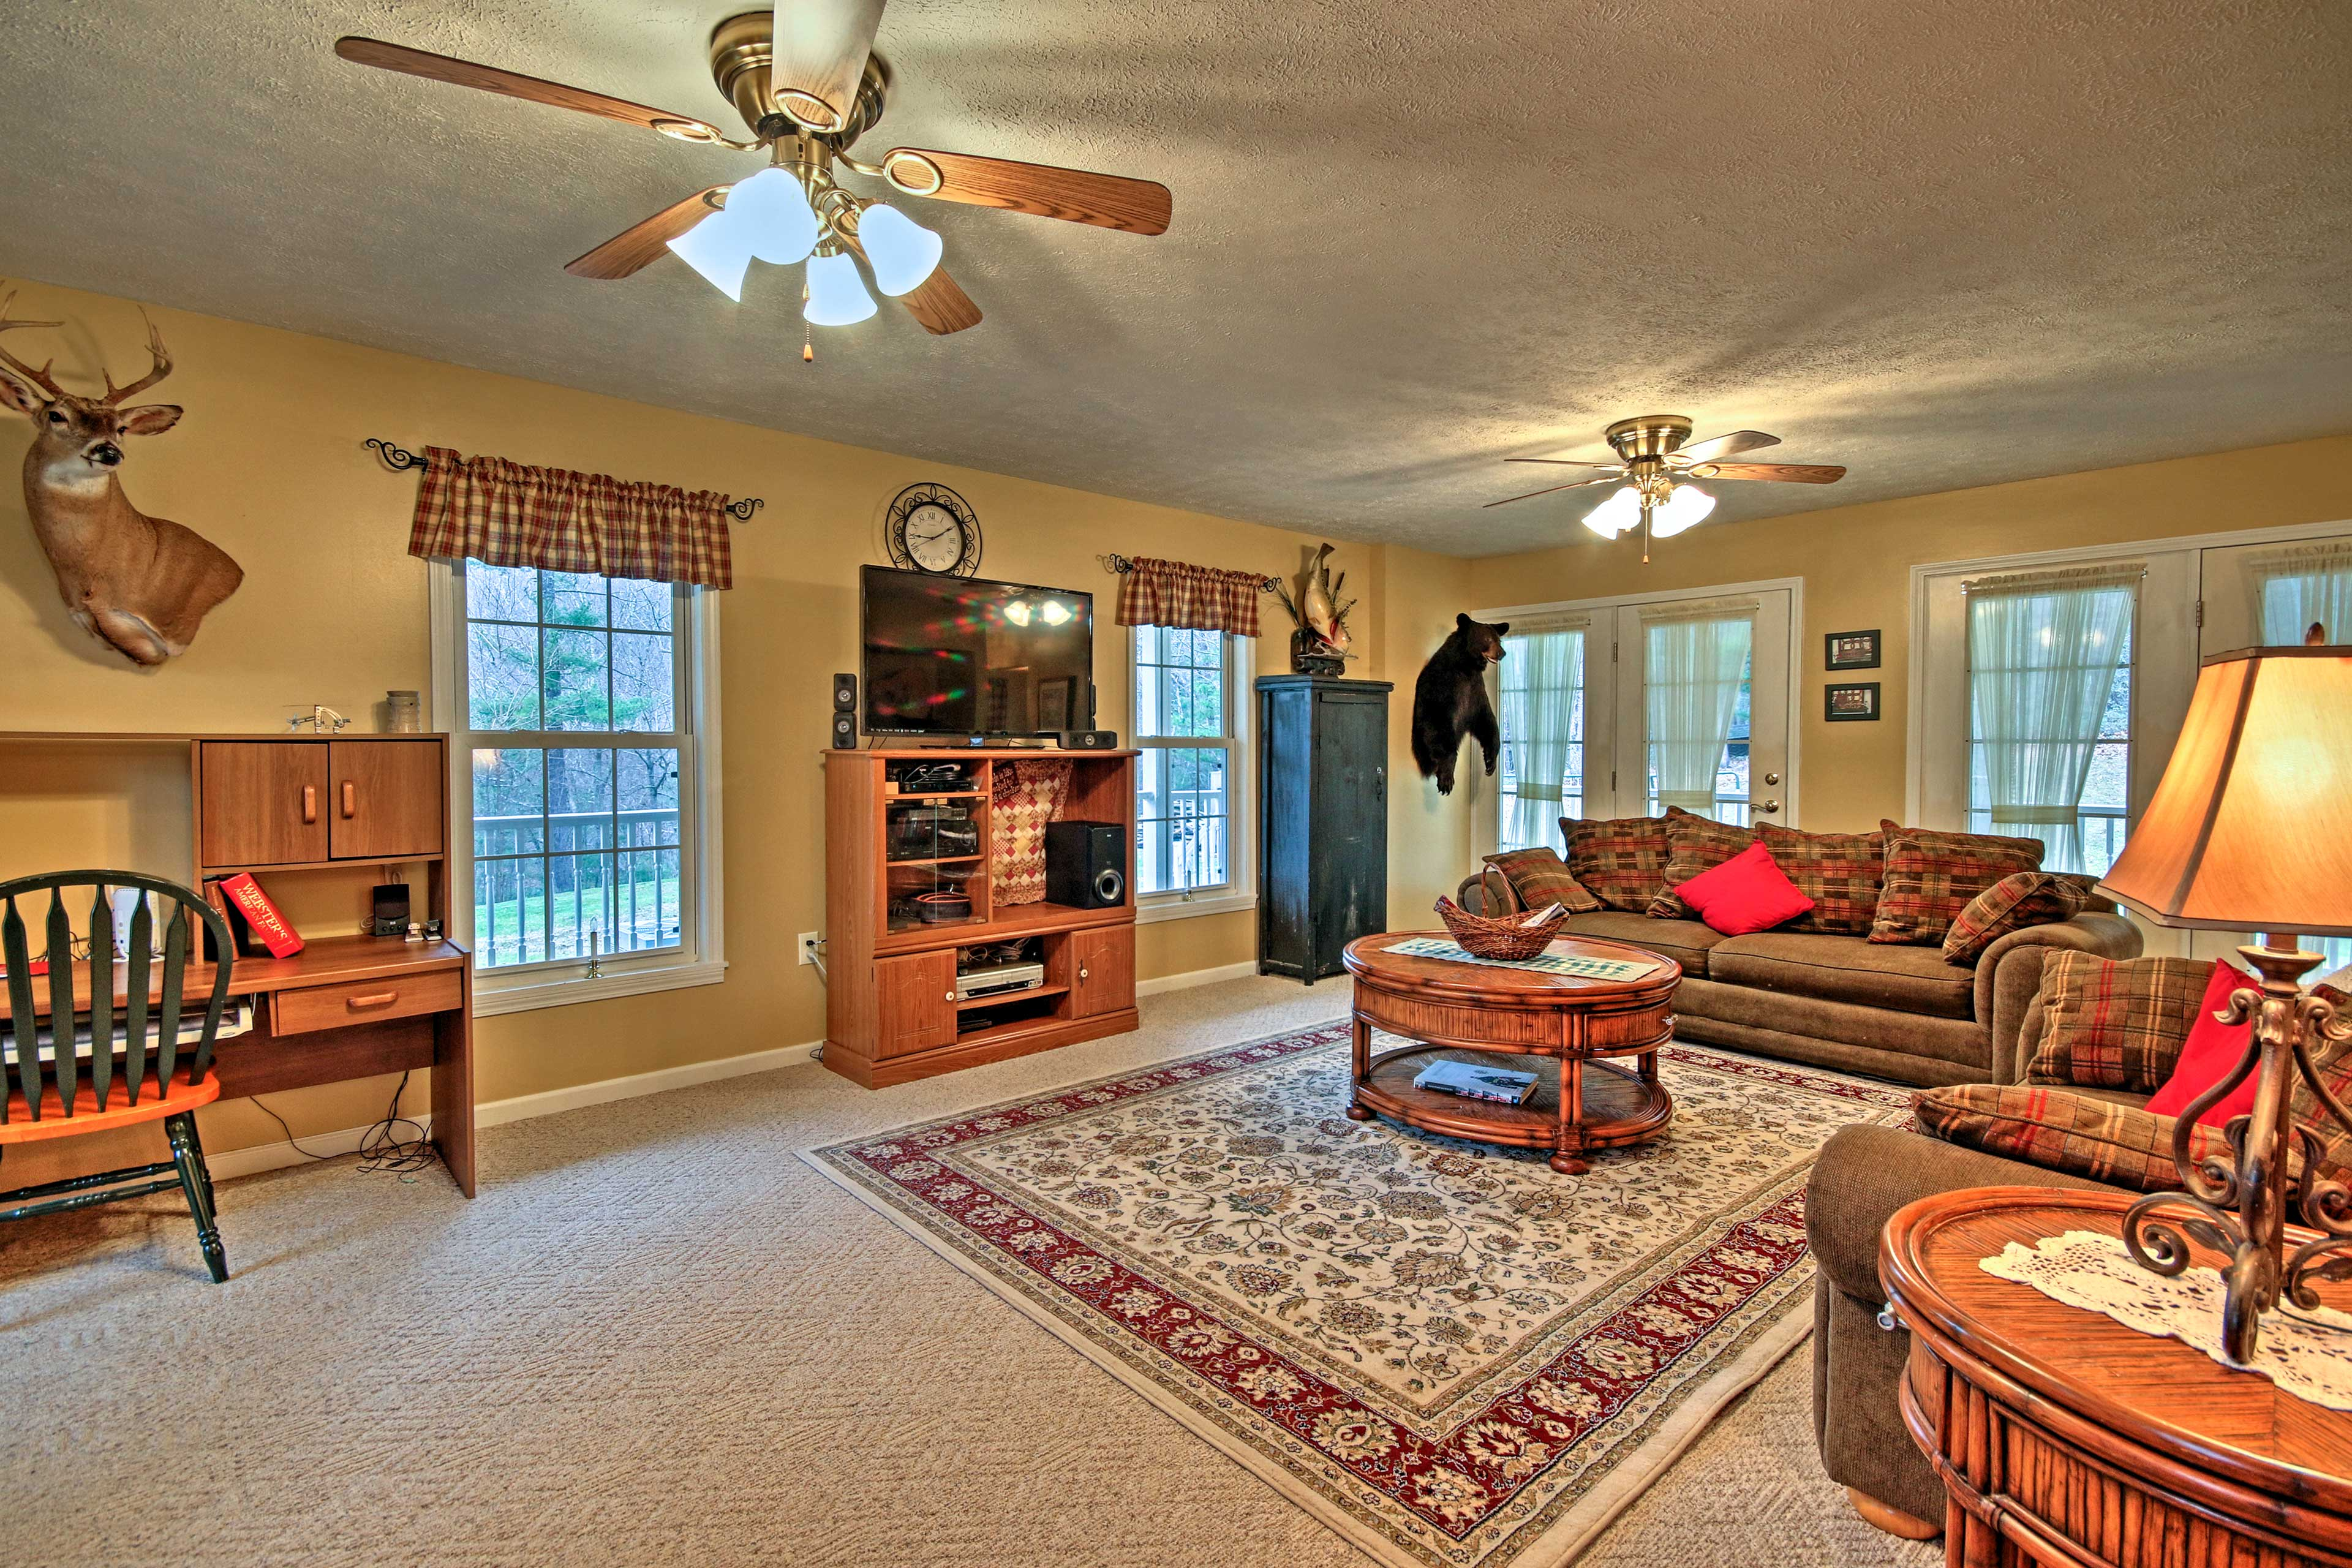 This interior boasts 2,400 square feet of living space and accommodations for 8!